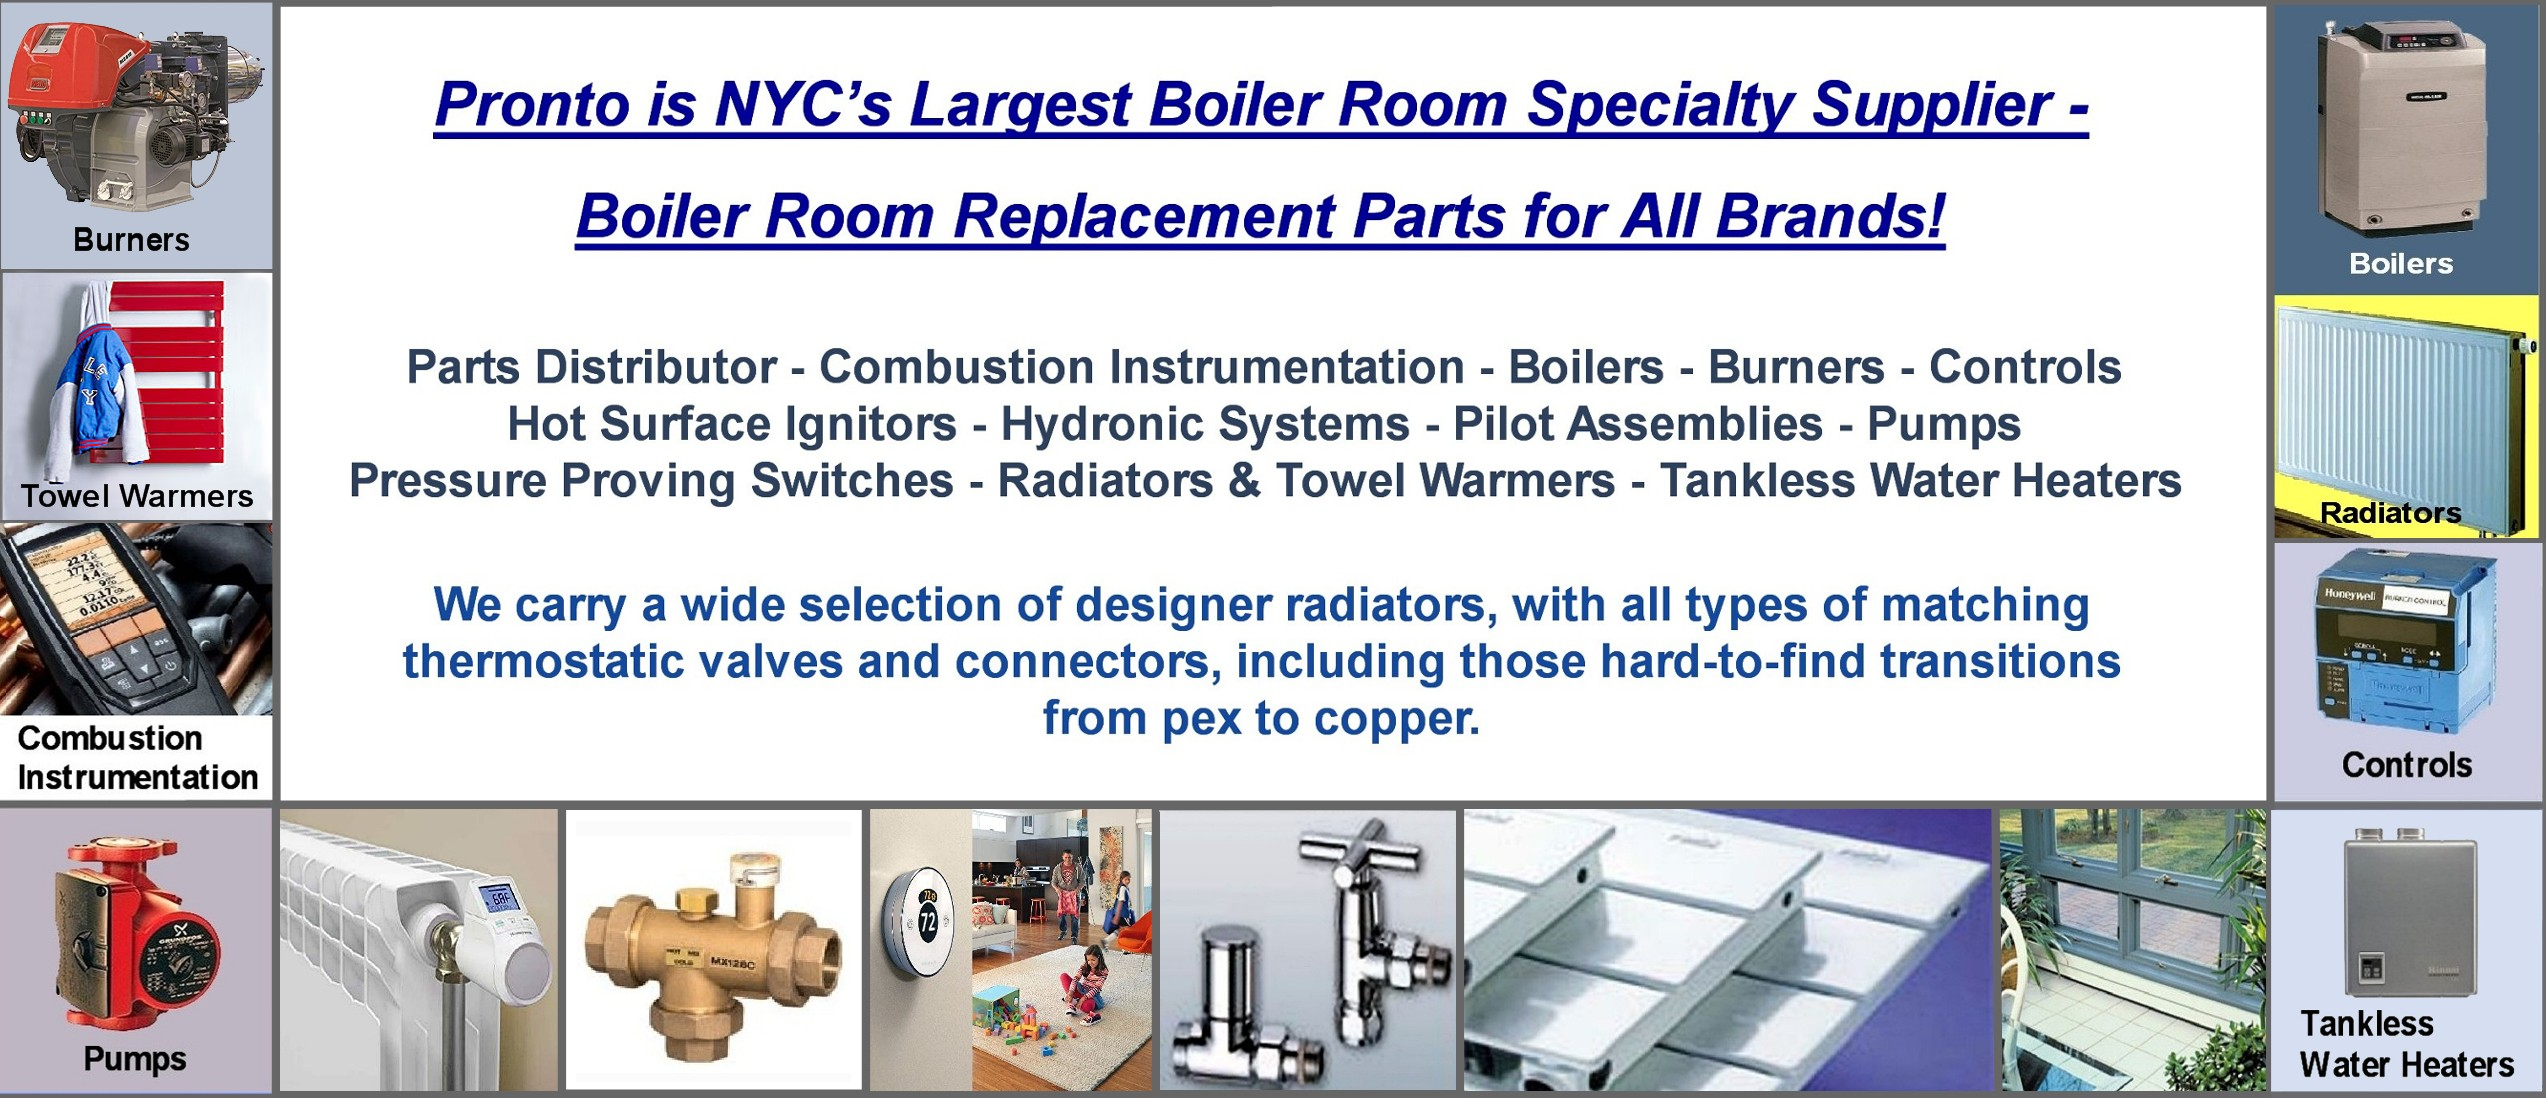 Pronto Gas Heating Supplies | NY Bronx Boiler-Room OEM Parts